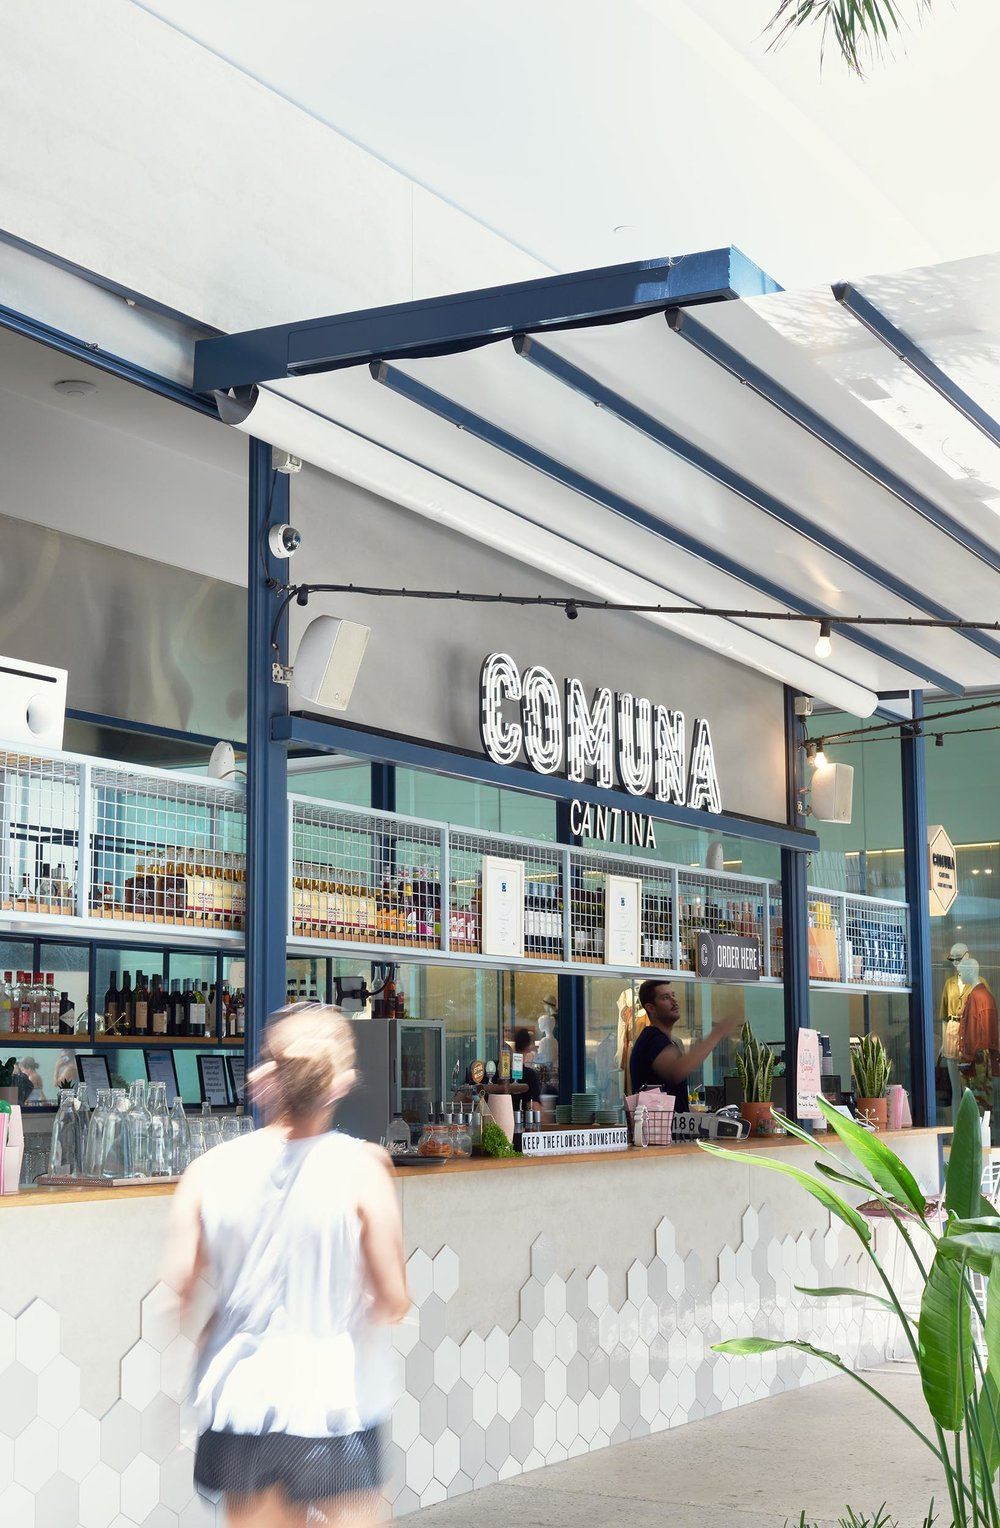 Communa Cantina Pacific Fair Gold Coast Details - Brisbane Advertising Photography, Brisbane Commercial Photography.jpg